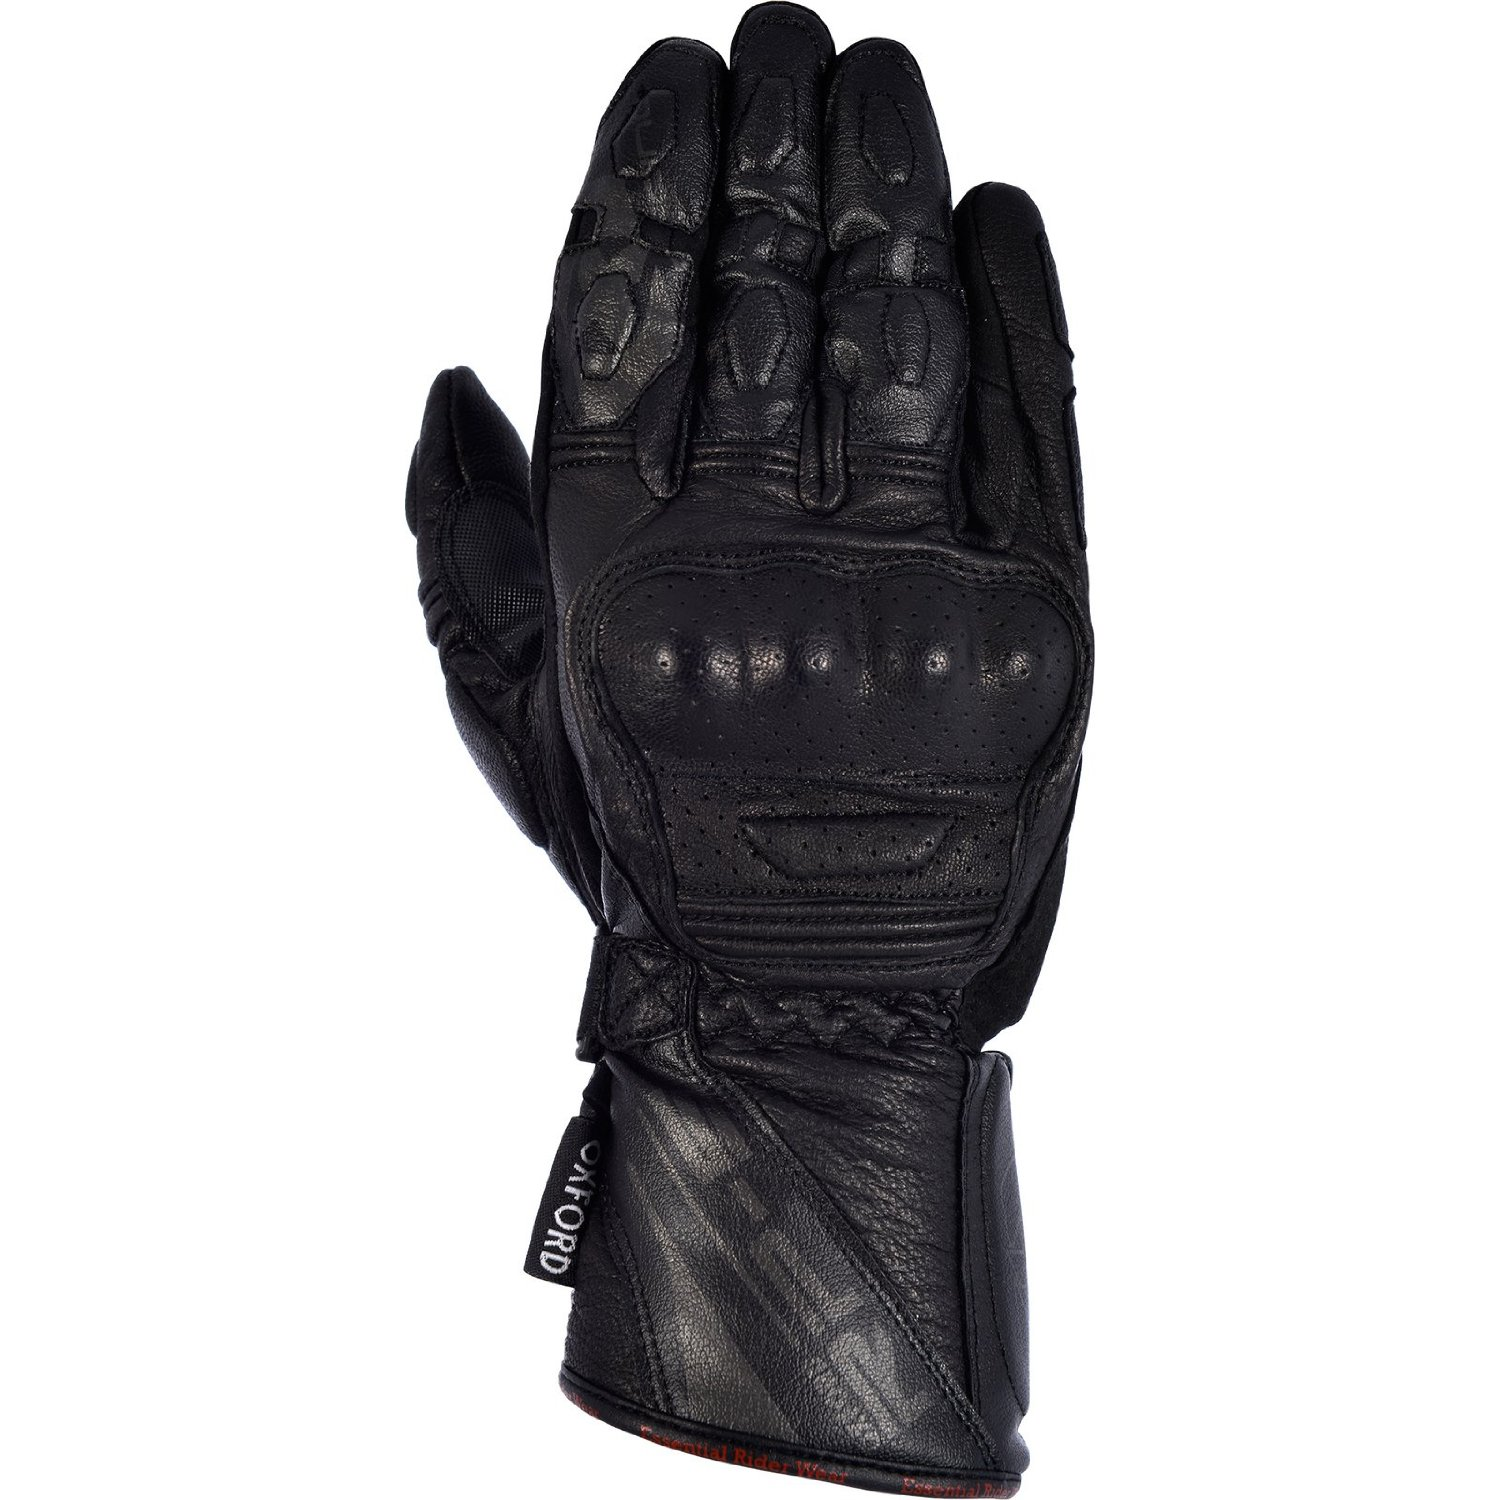 Guantes largos Oxford RP-5 negro GM230